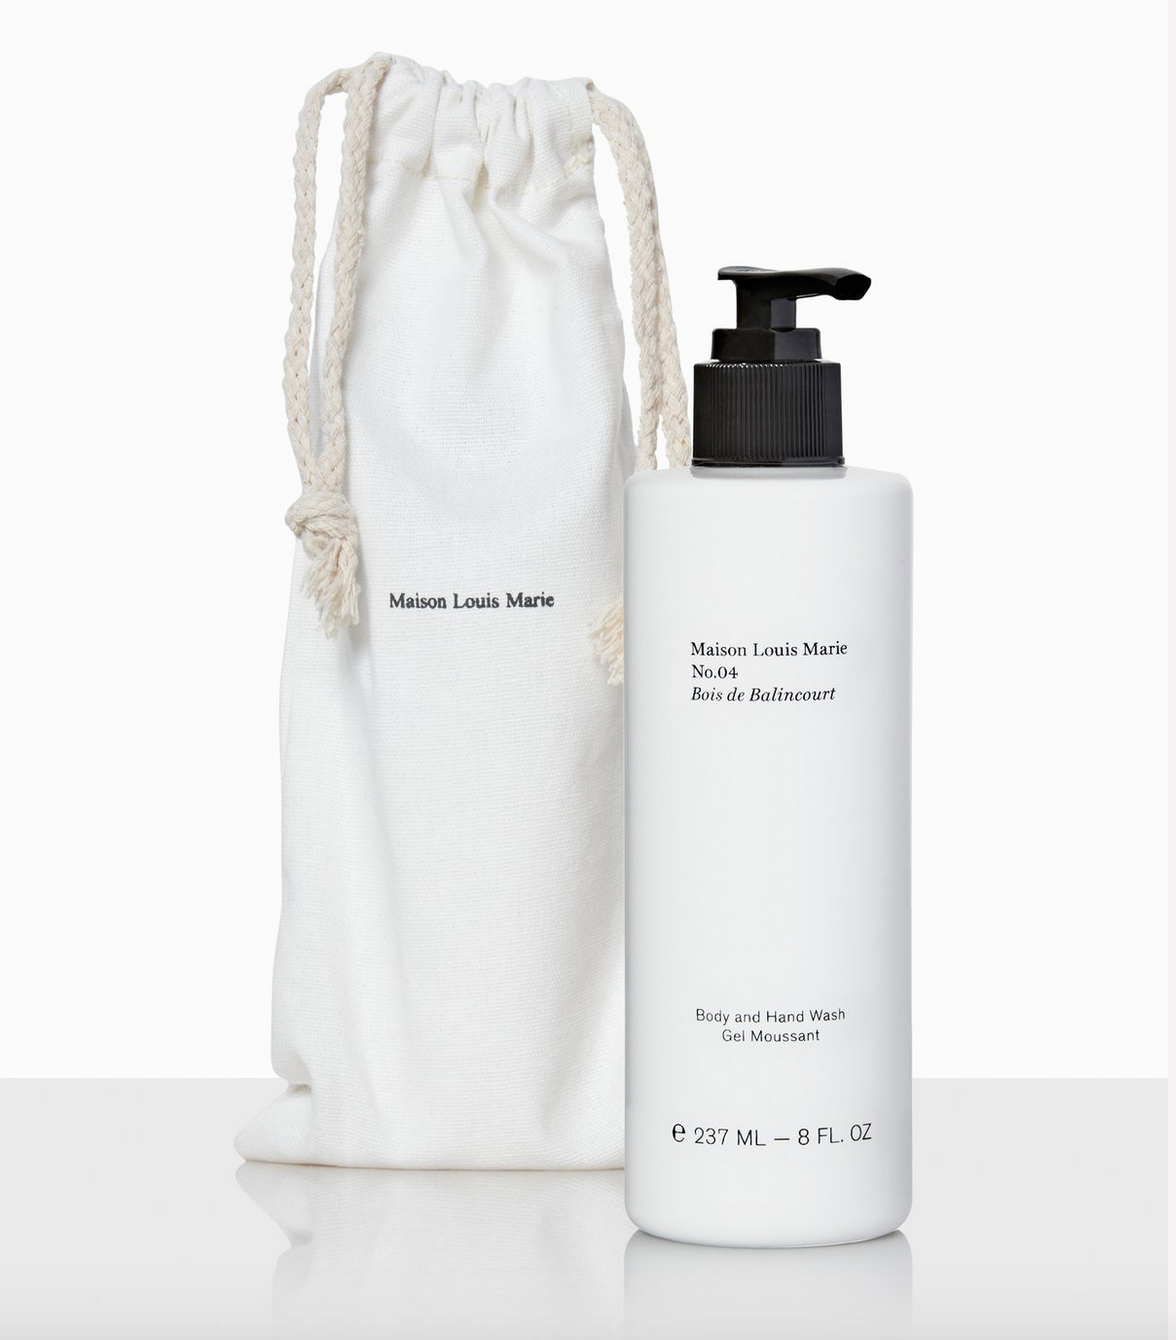 No.02 Le Long Fond - Body and Hand wash